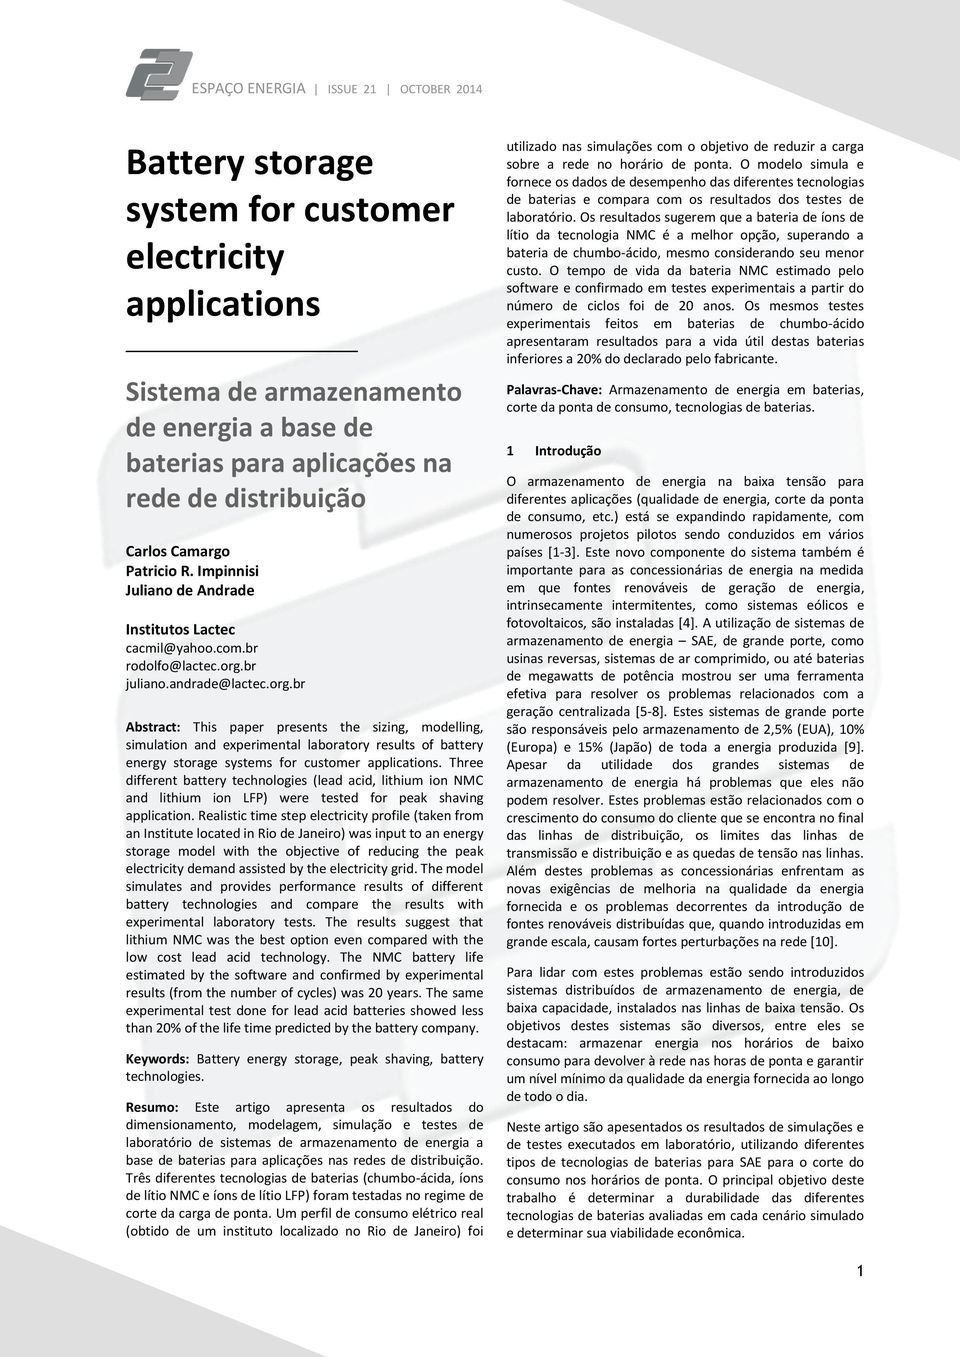 br juliano.andrade@lactec.org.br Abstract: This paper presents the sizing, modelling, simulation and experimental laboratory results of battery energy storage systems for customer applications.